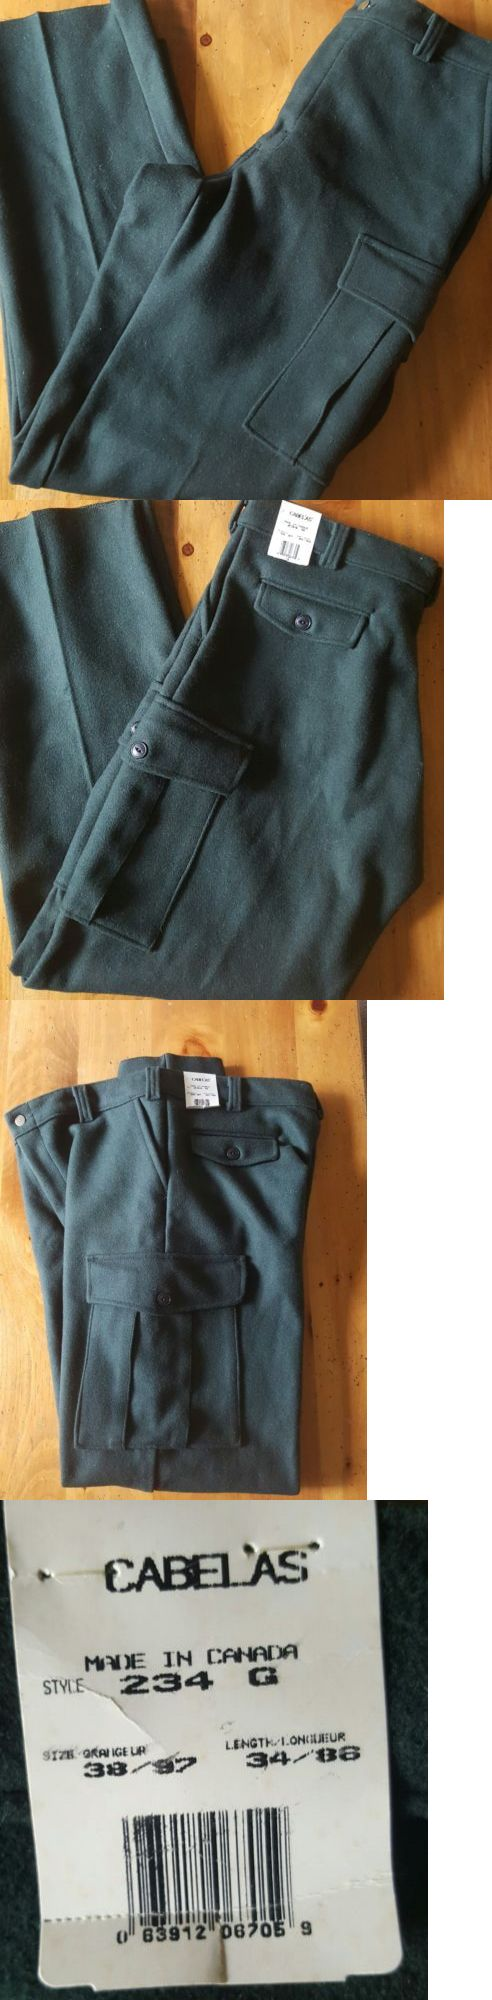 Pants and Bibs 177873: Cabelas Men S Wool Hunting Pants New With Tags Green 38X34 -> BUY IT NOW ONLY: $65 on eBay!